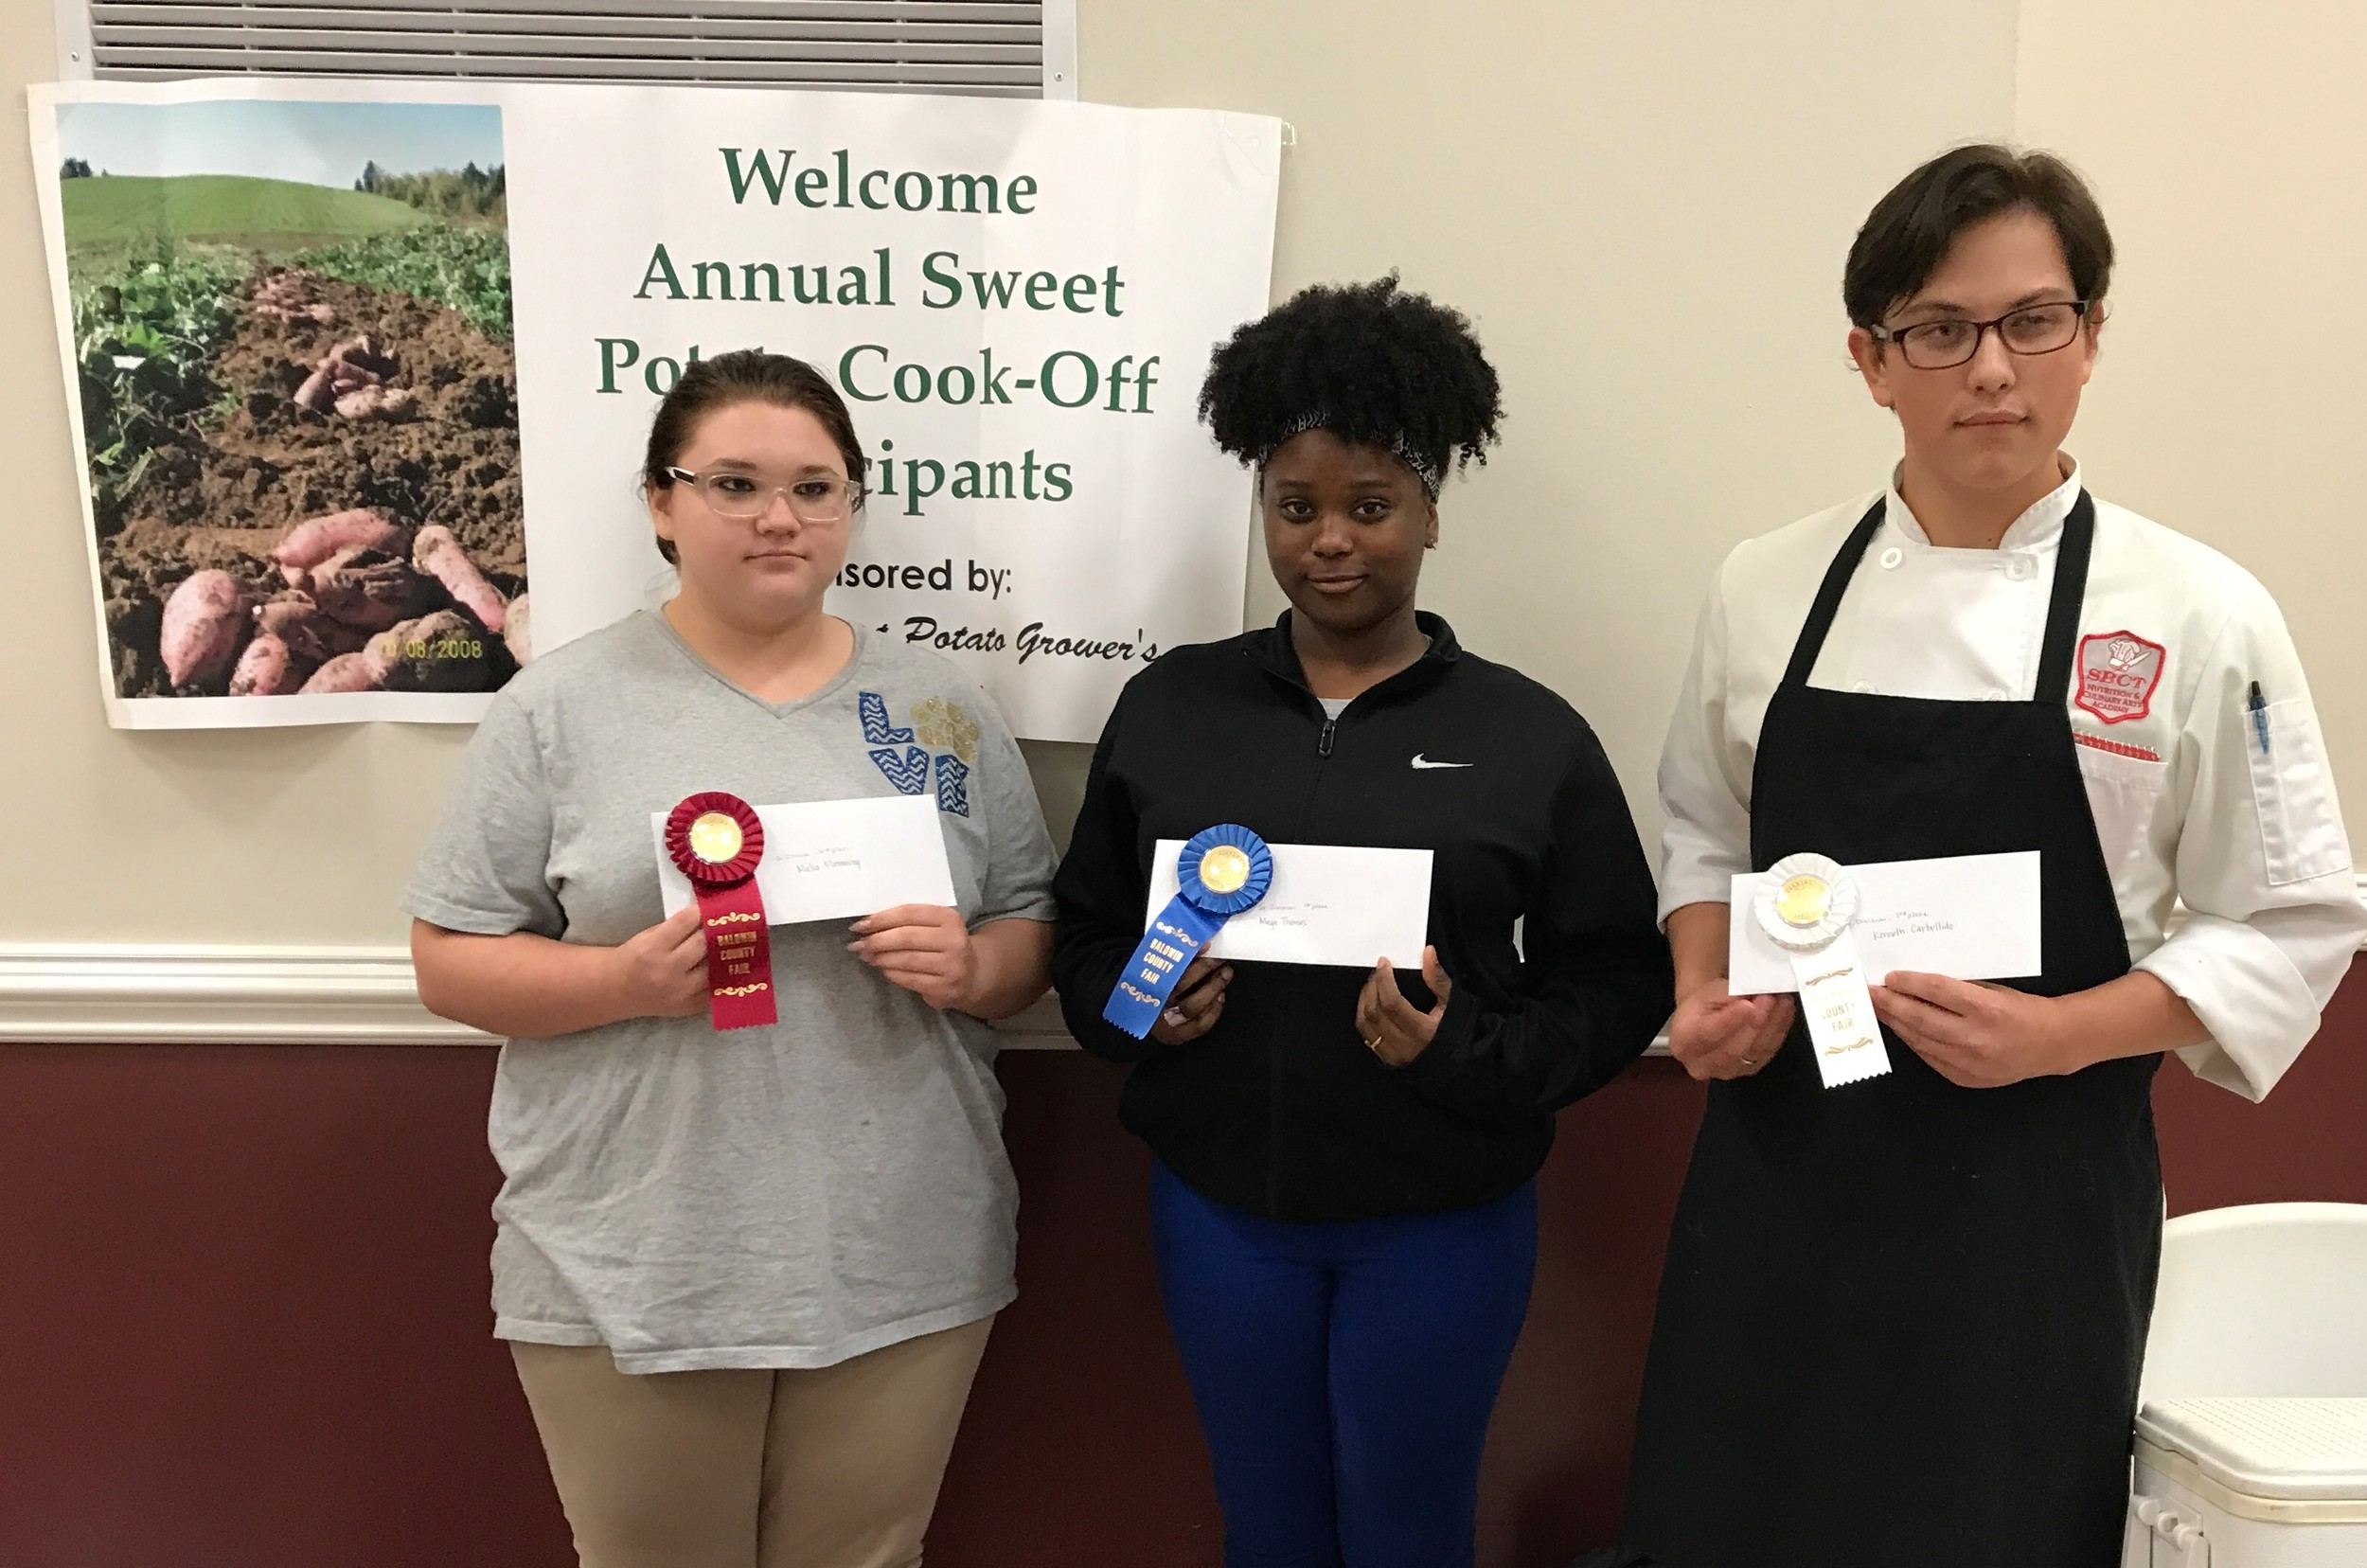 Senior Division Sweet Potato Recipe Contest winners are (l to r) 2nd place, Malia Flemming; 1st place and Most Nutritious, Maya Thomas; and 3rd place, Kenneth Carbullido.